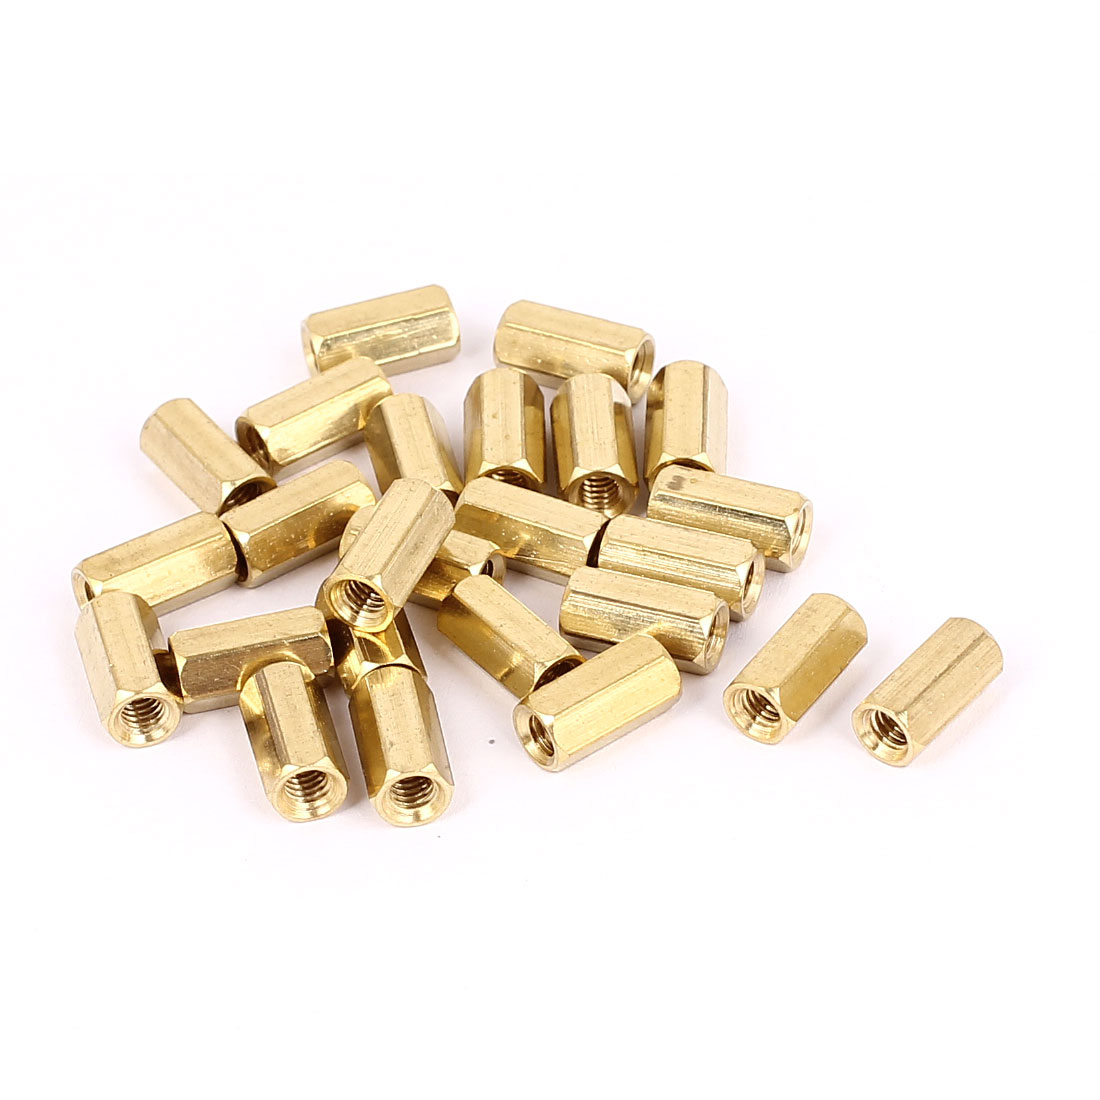 M4 x 12mm Female Thread Brass Hex Standoff Pillar Rod Spacer Coupler Nut 25pcs